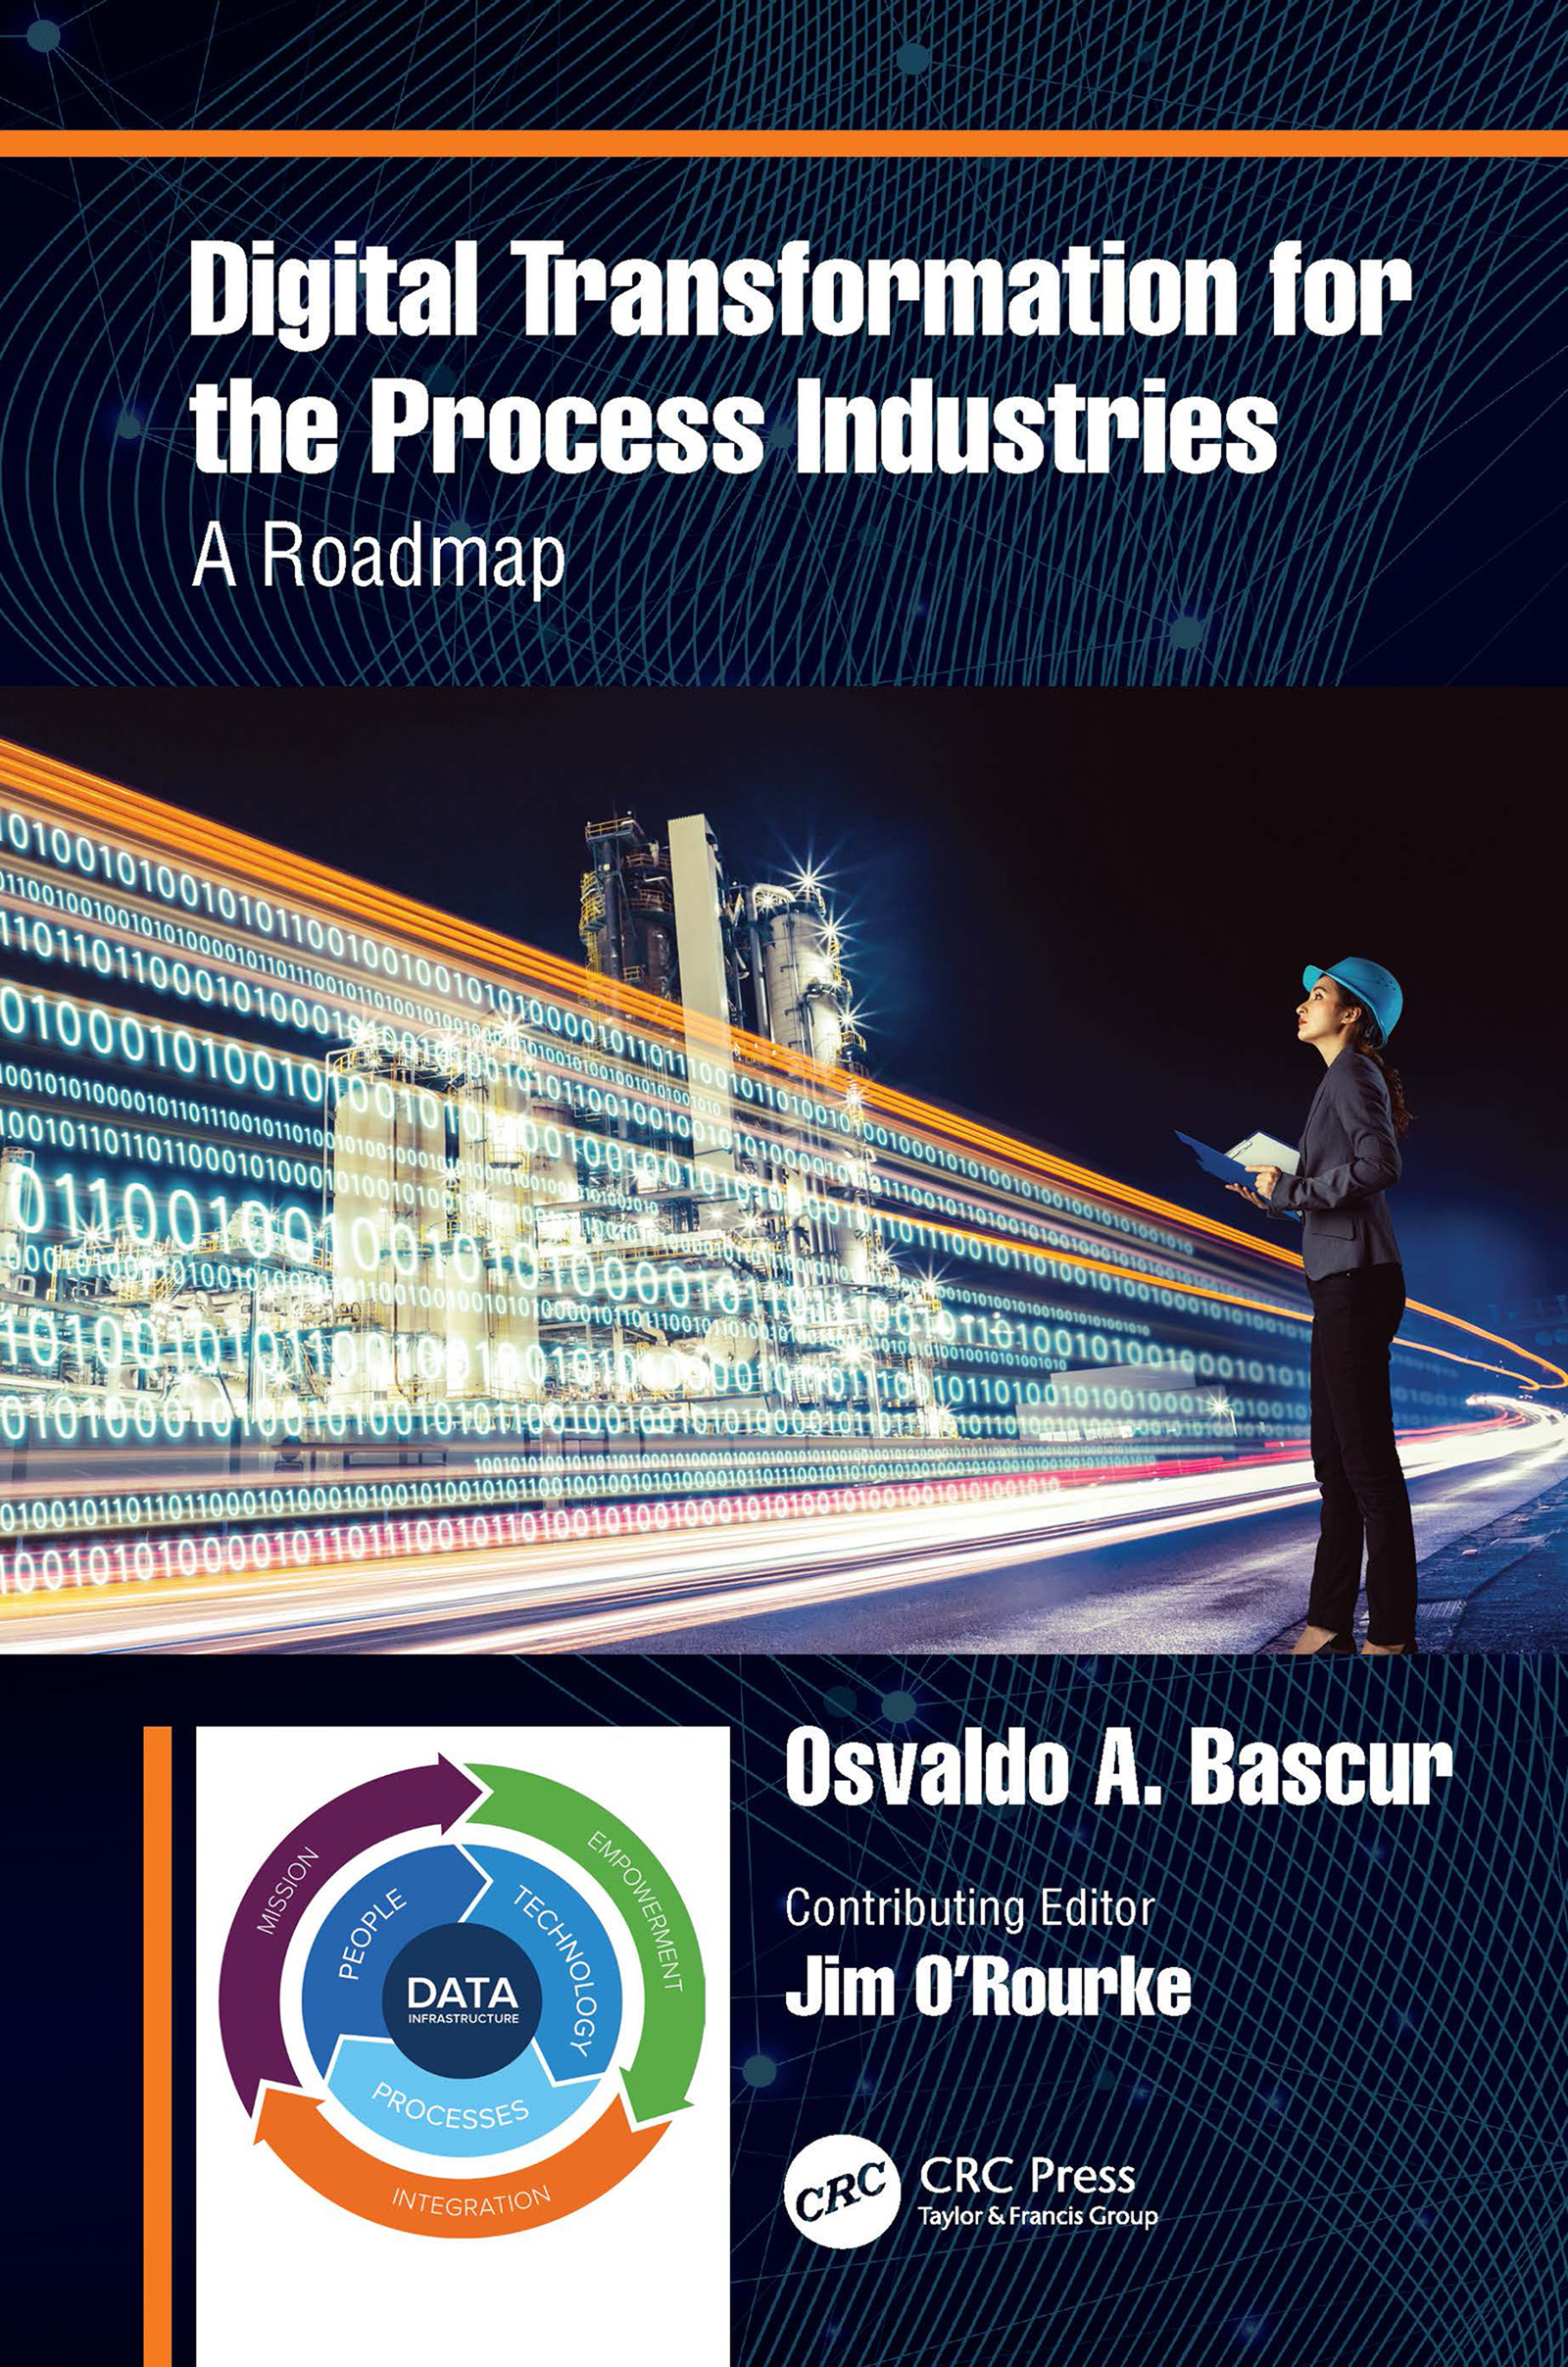 Digital Transformation for the Process Industries